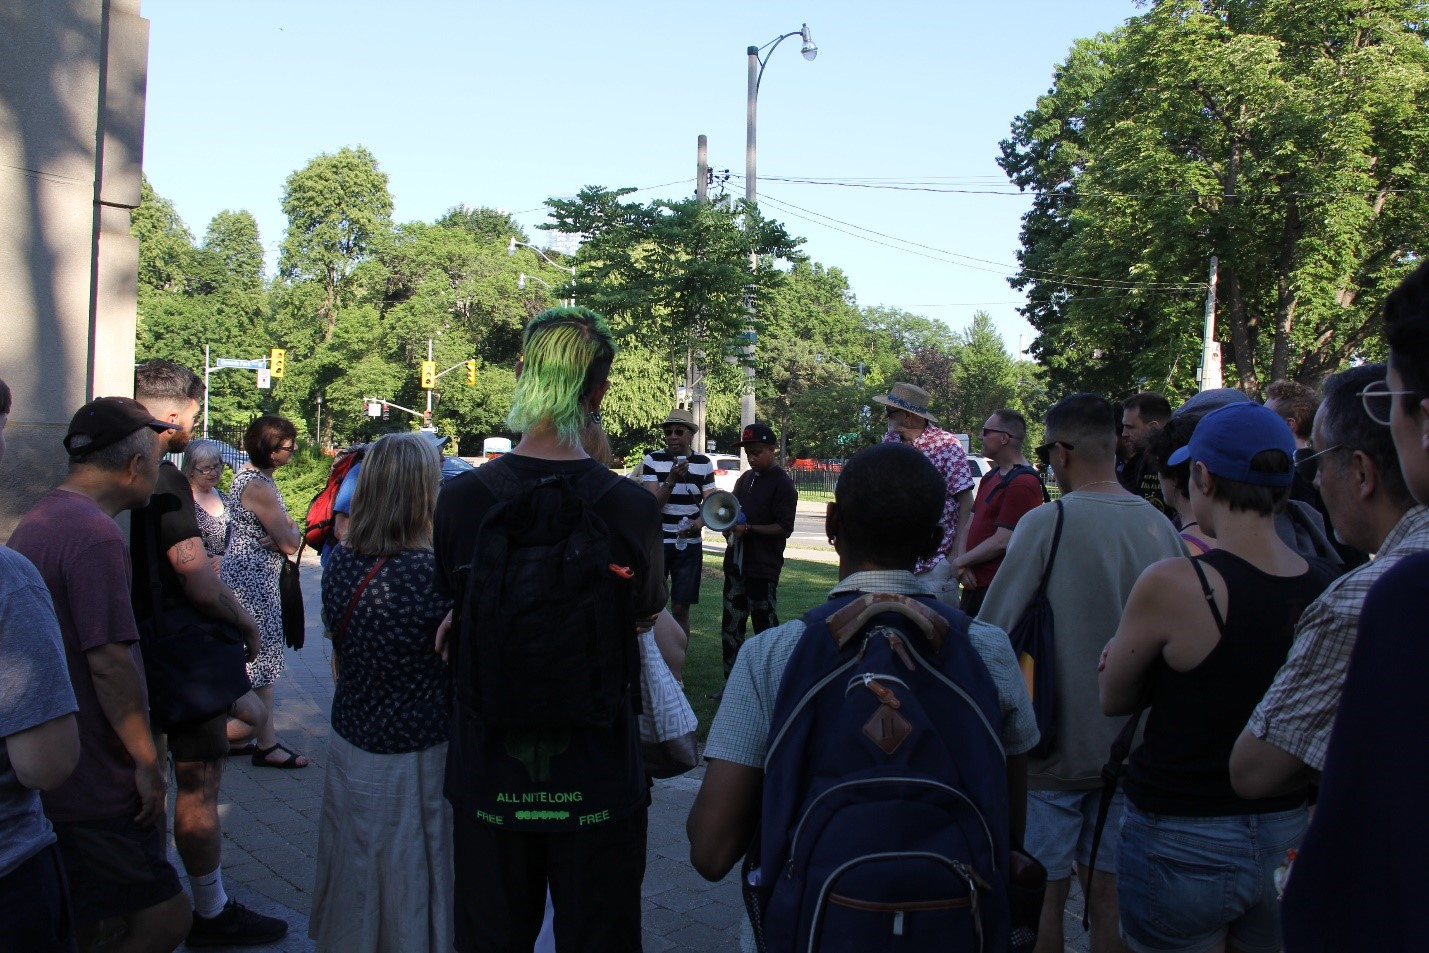 People participating in a walking tour of Queen's Park